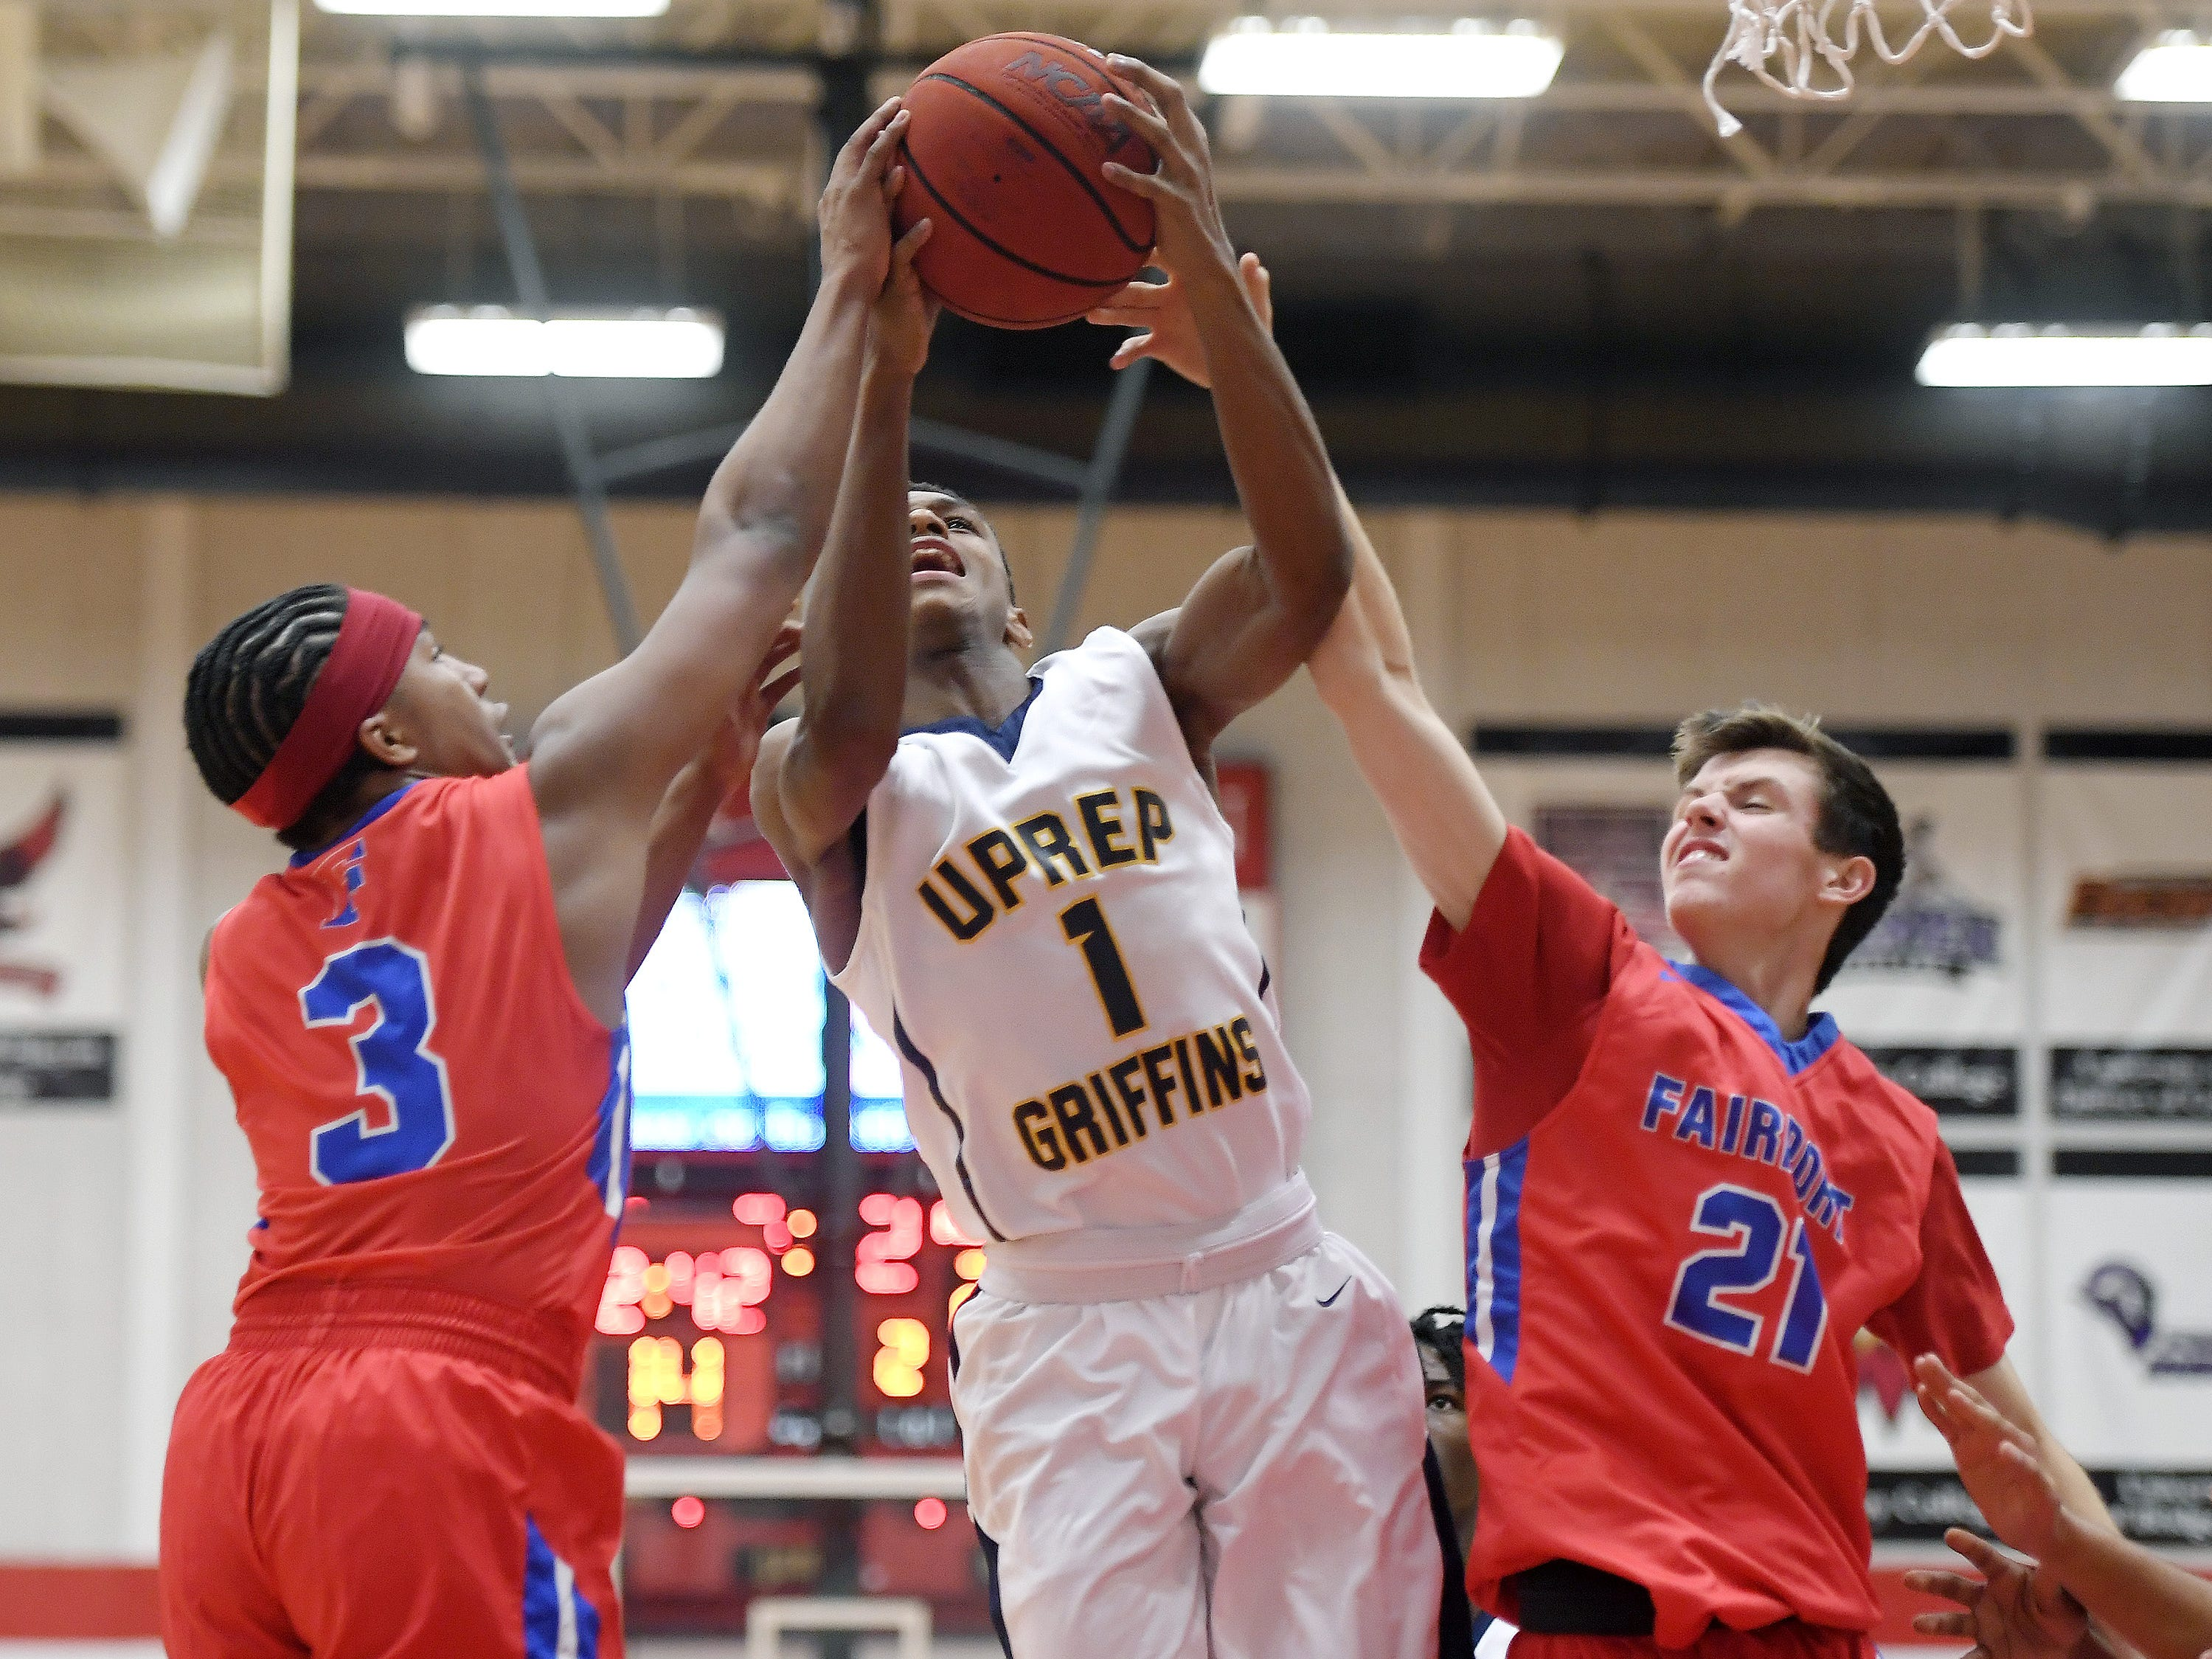 University Prep's Na'Zea Fowlks, center, grabs a rebound between Fairport's Andre Starks, left, and Max Molisani during a regular season game played at Roberts Wesleyan College on Wednesday, Nov. 28, 2018. Fairport beat University Prep 56-51.